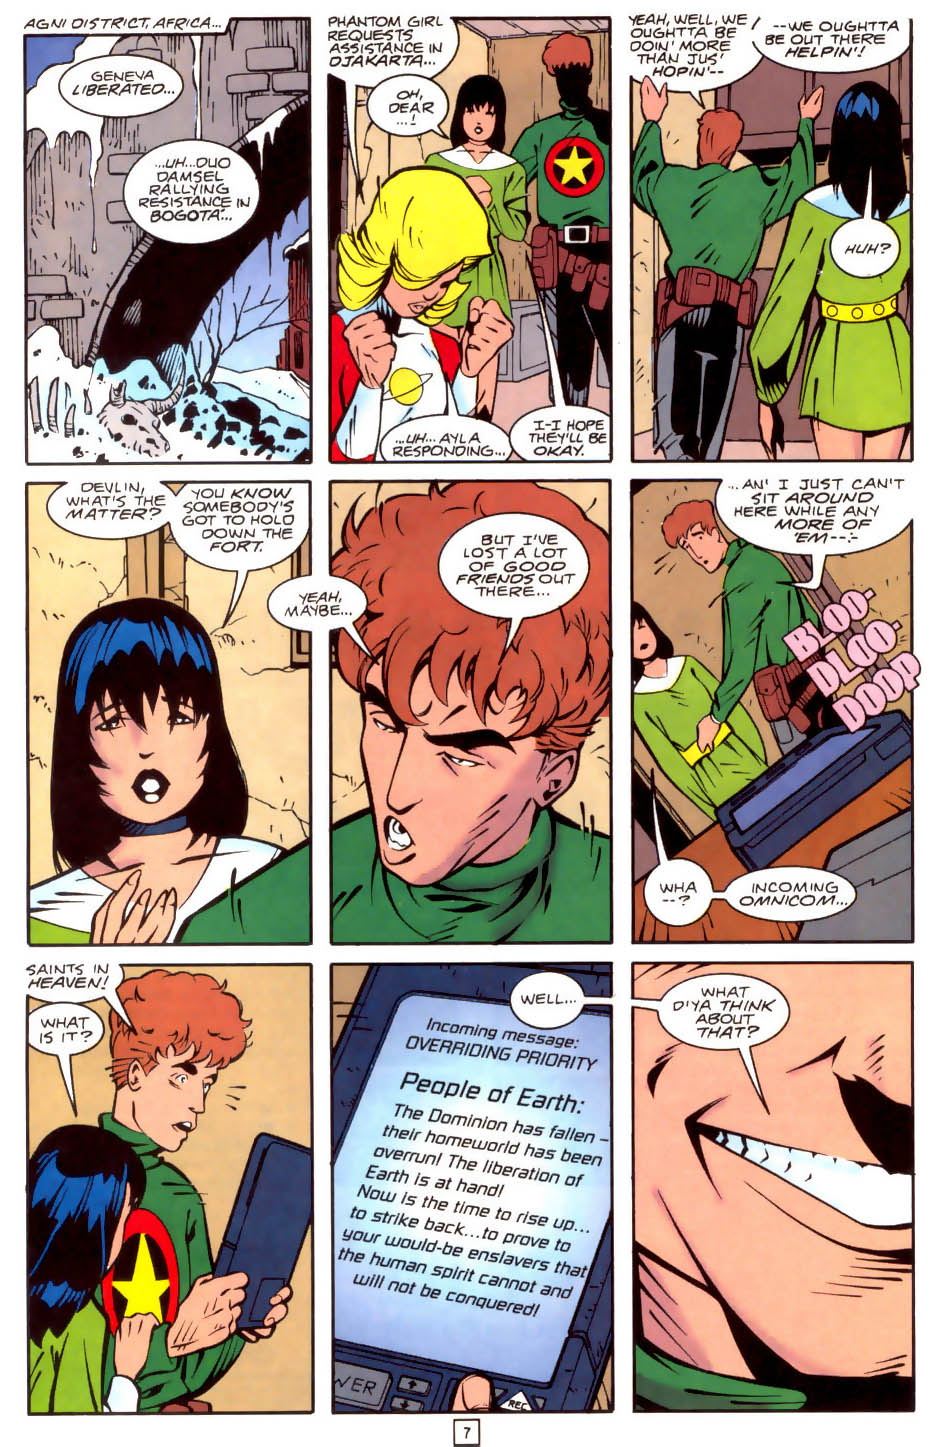 Legion of Super-Heroes (1989) 35 Page 7